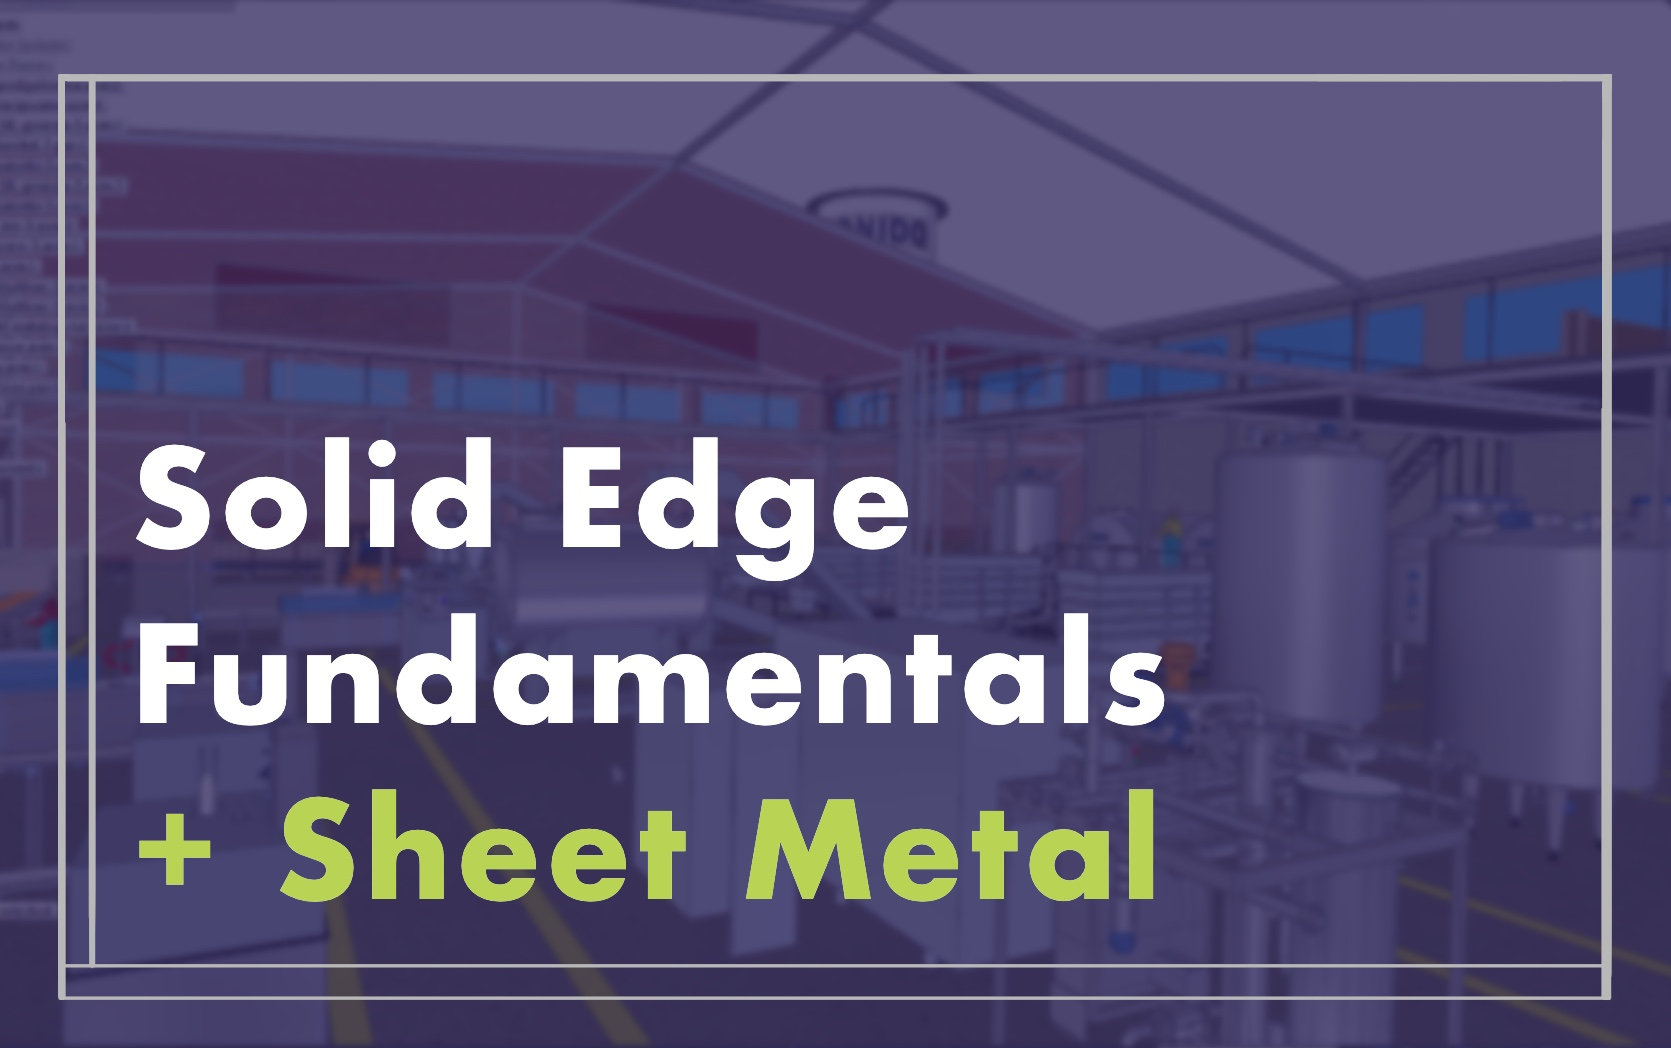 Solid edge fundamentals with sheet metal course image